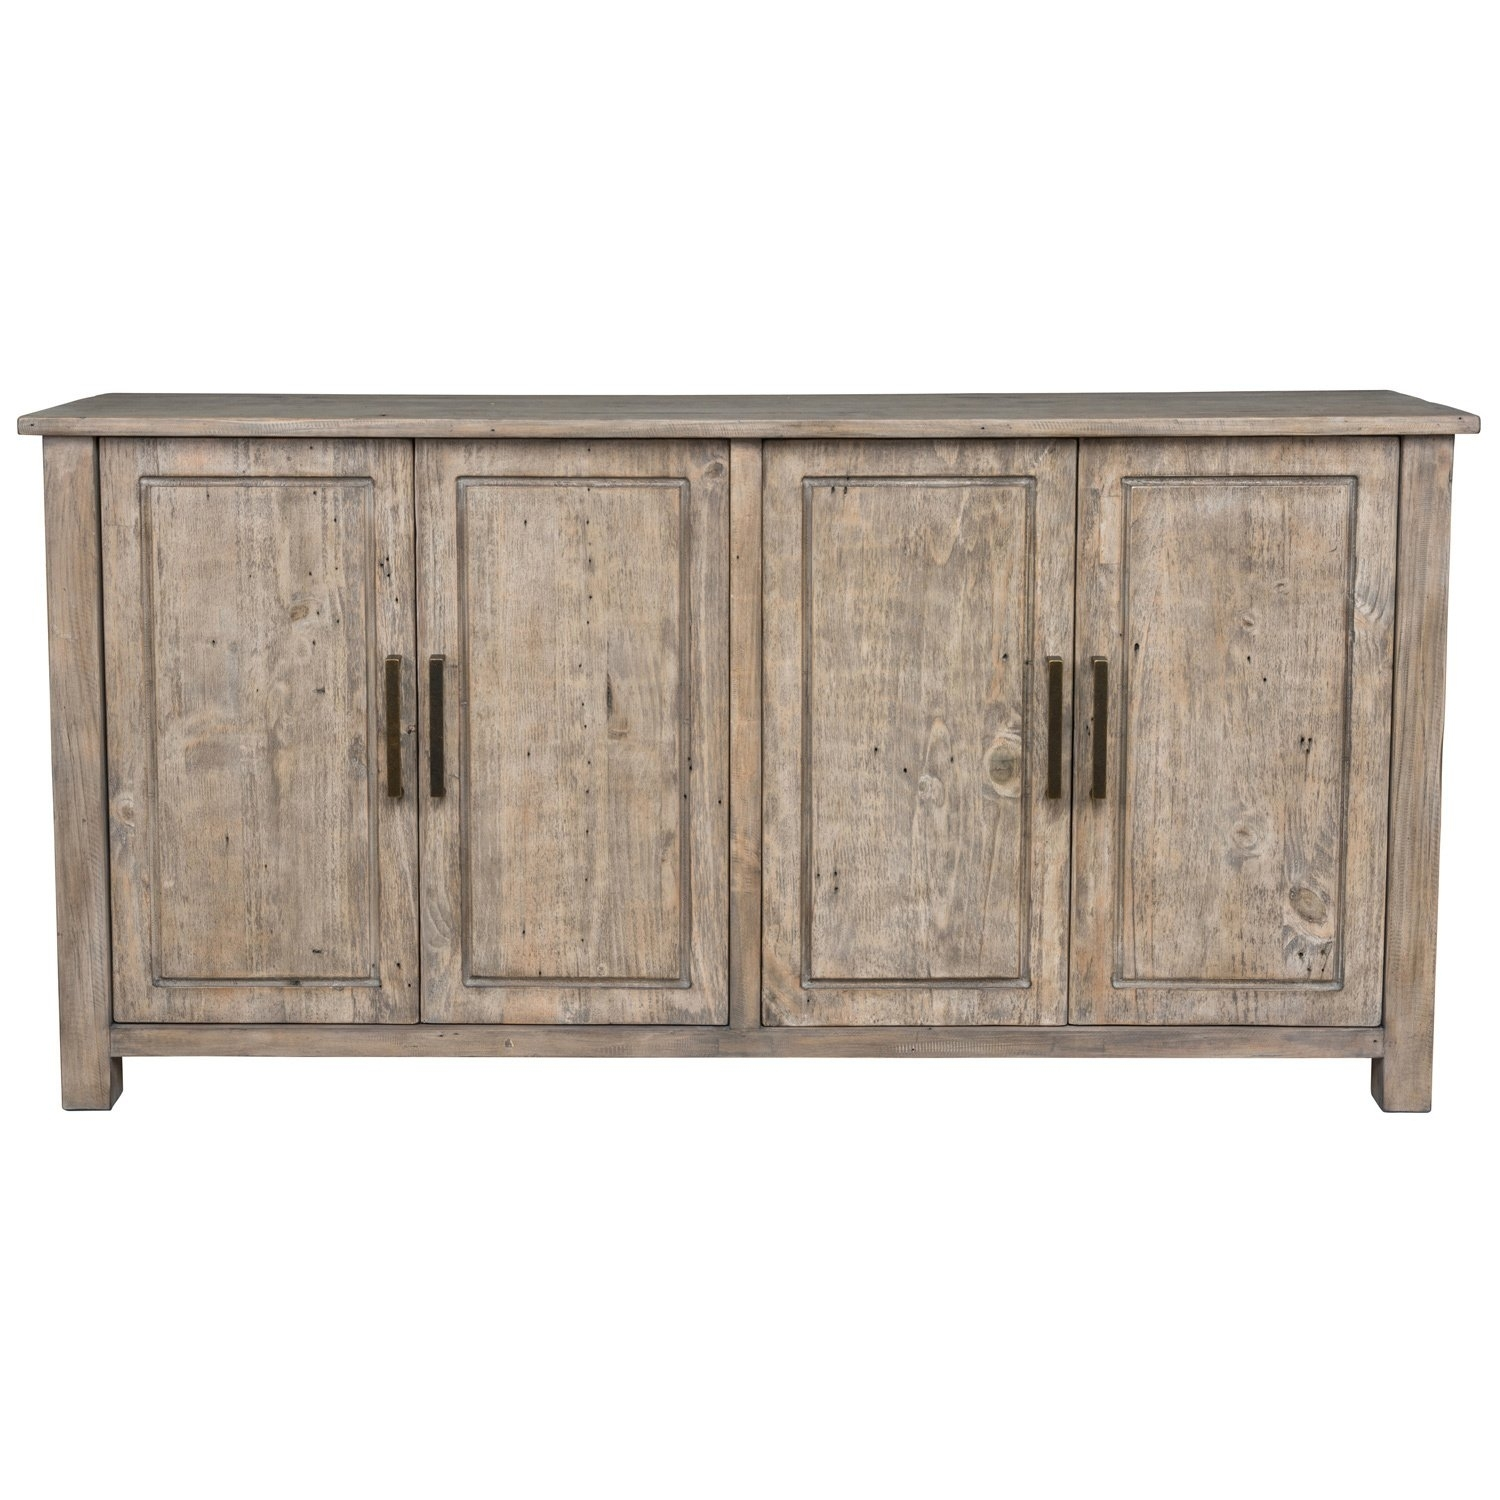 Shop Aires Reclaimed Wood 72-Inch Sideboardkosas Home - Free in Reclaimed Pine Turquoise 4-Door Sideboards (Image 20 of 30)